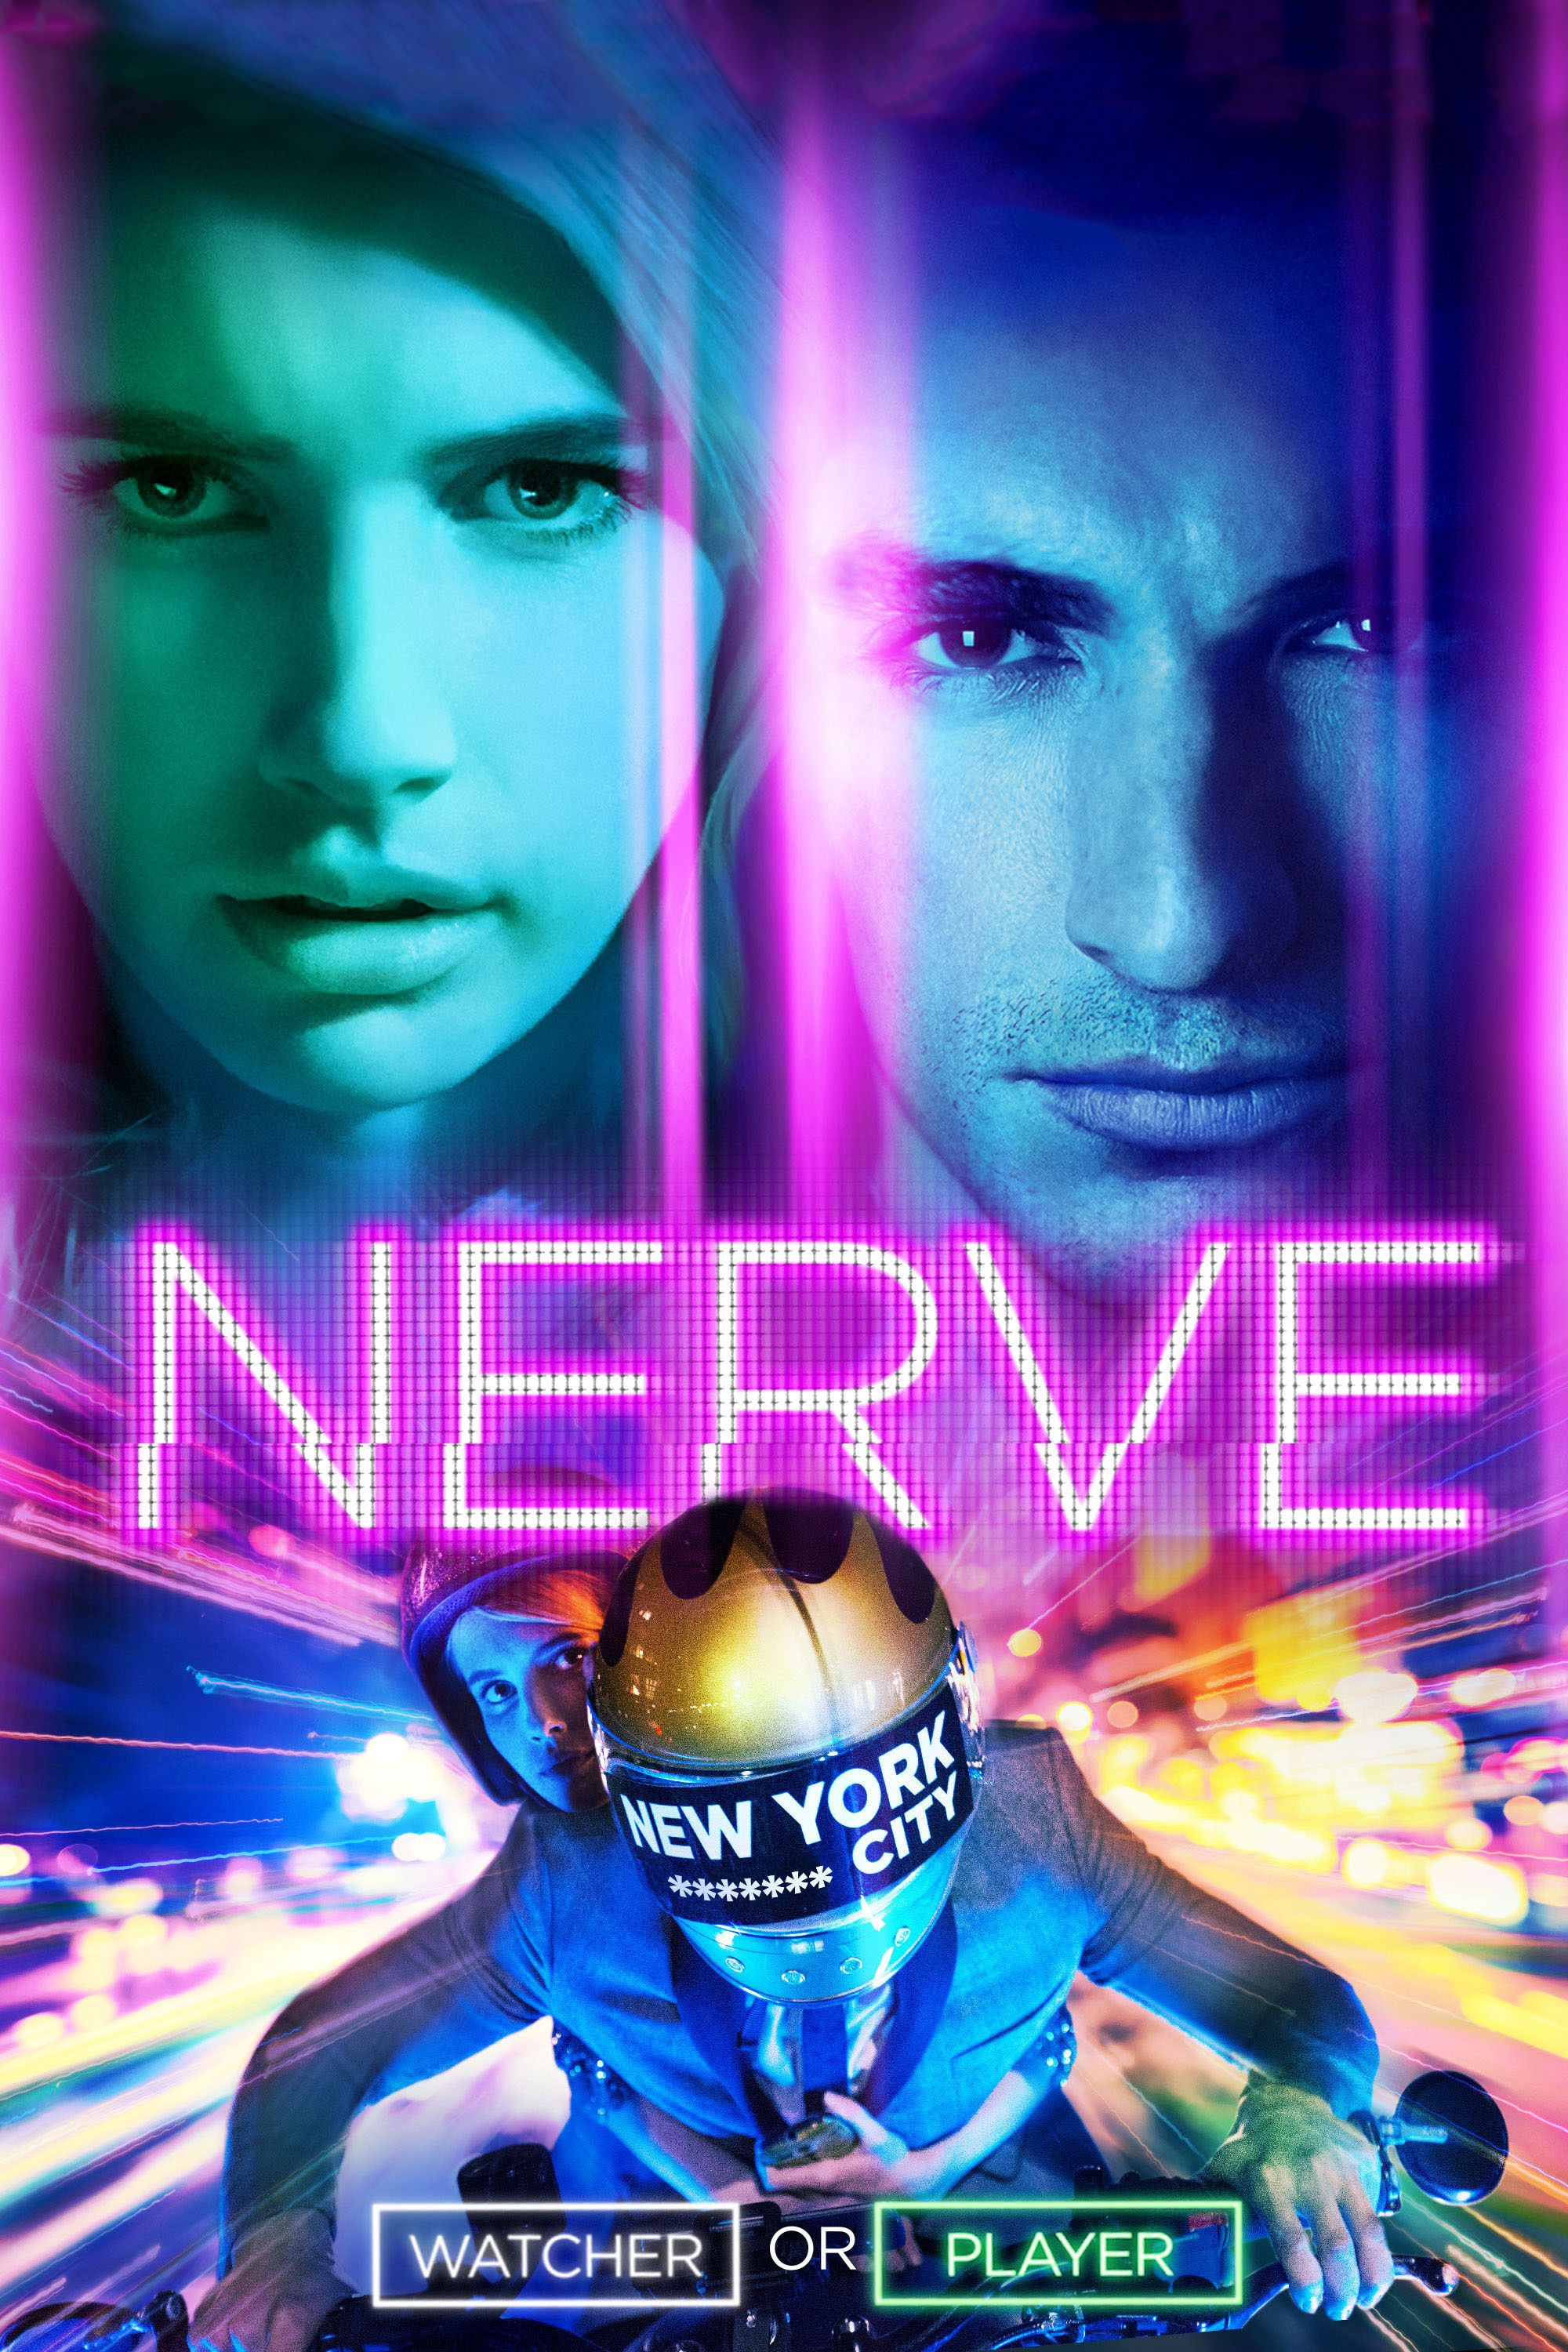 download nerve movie in hindi dubbed